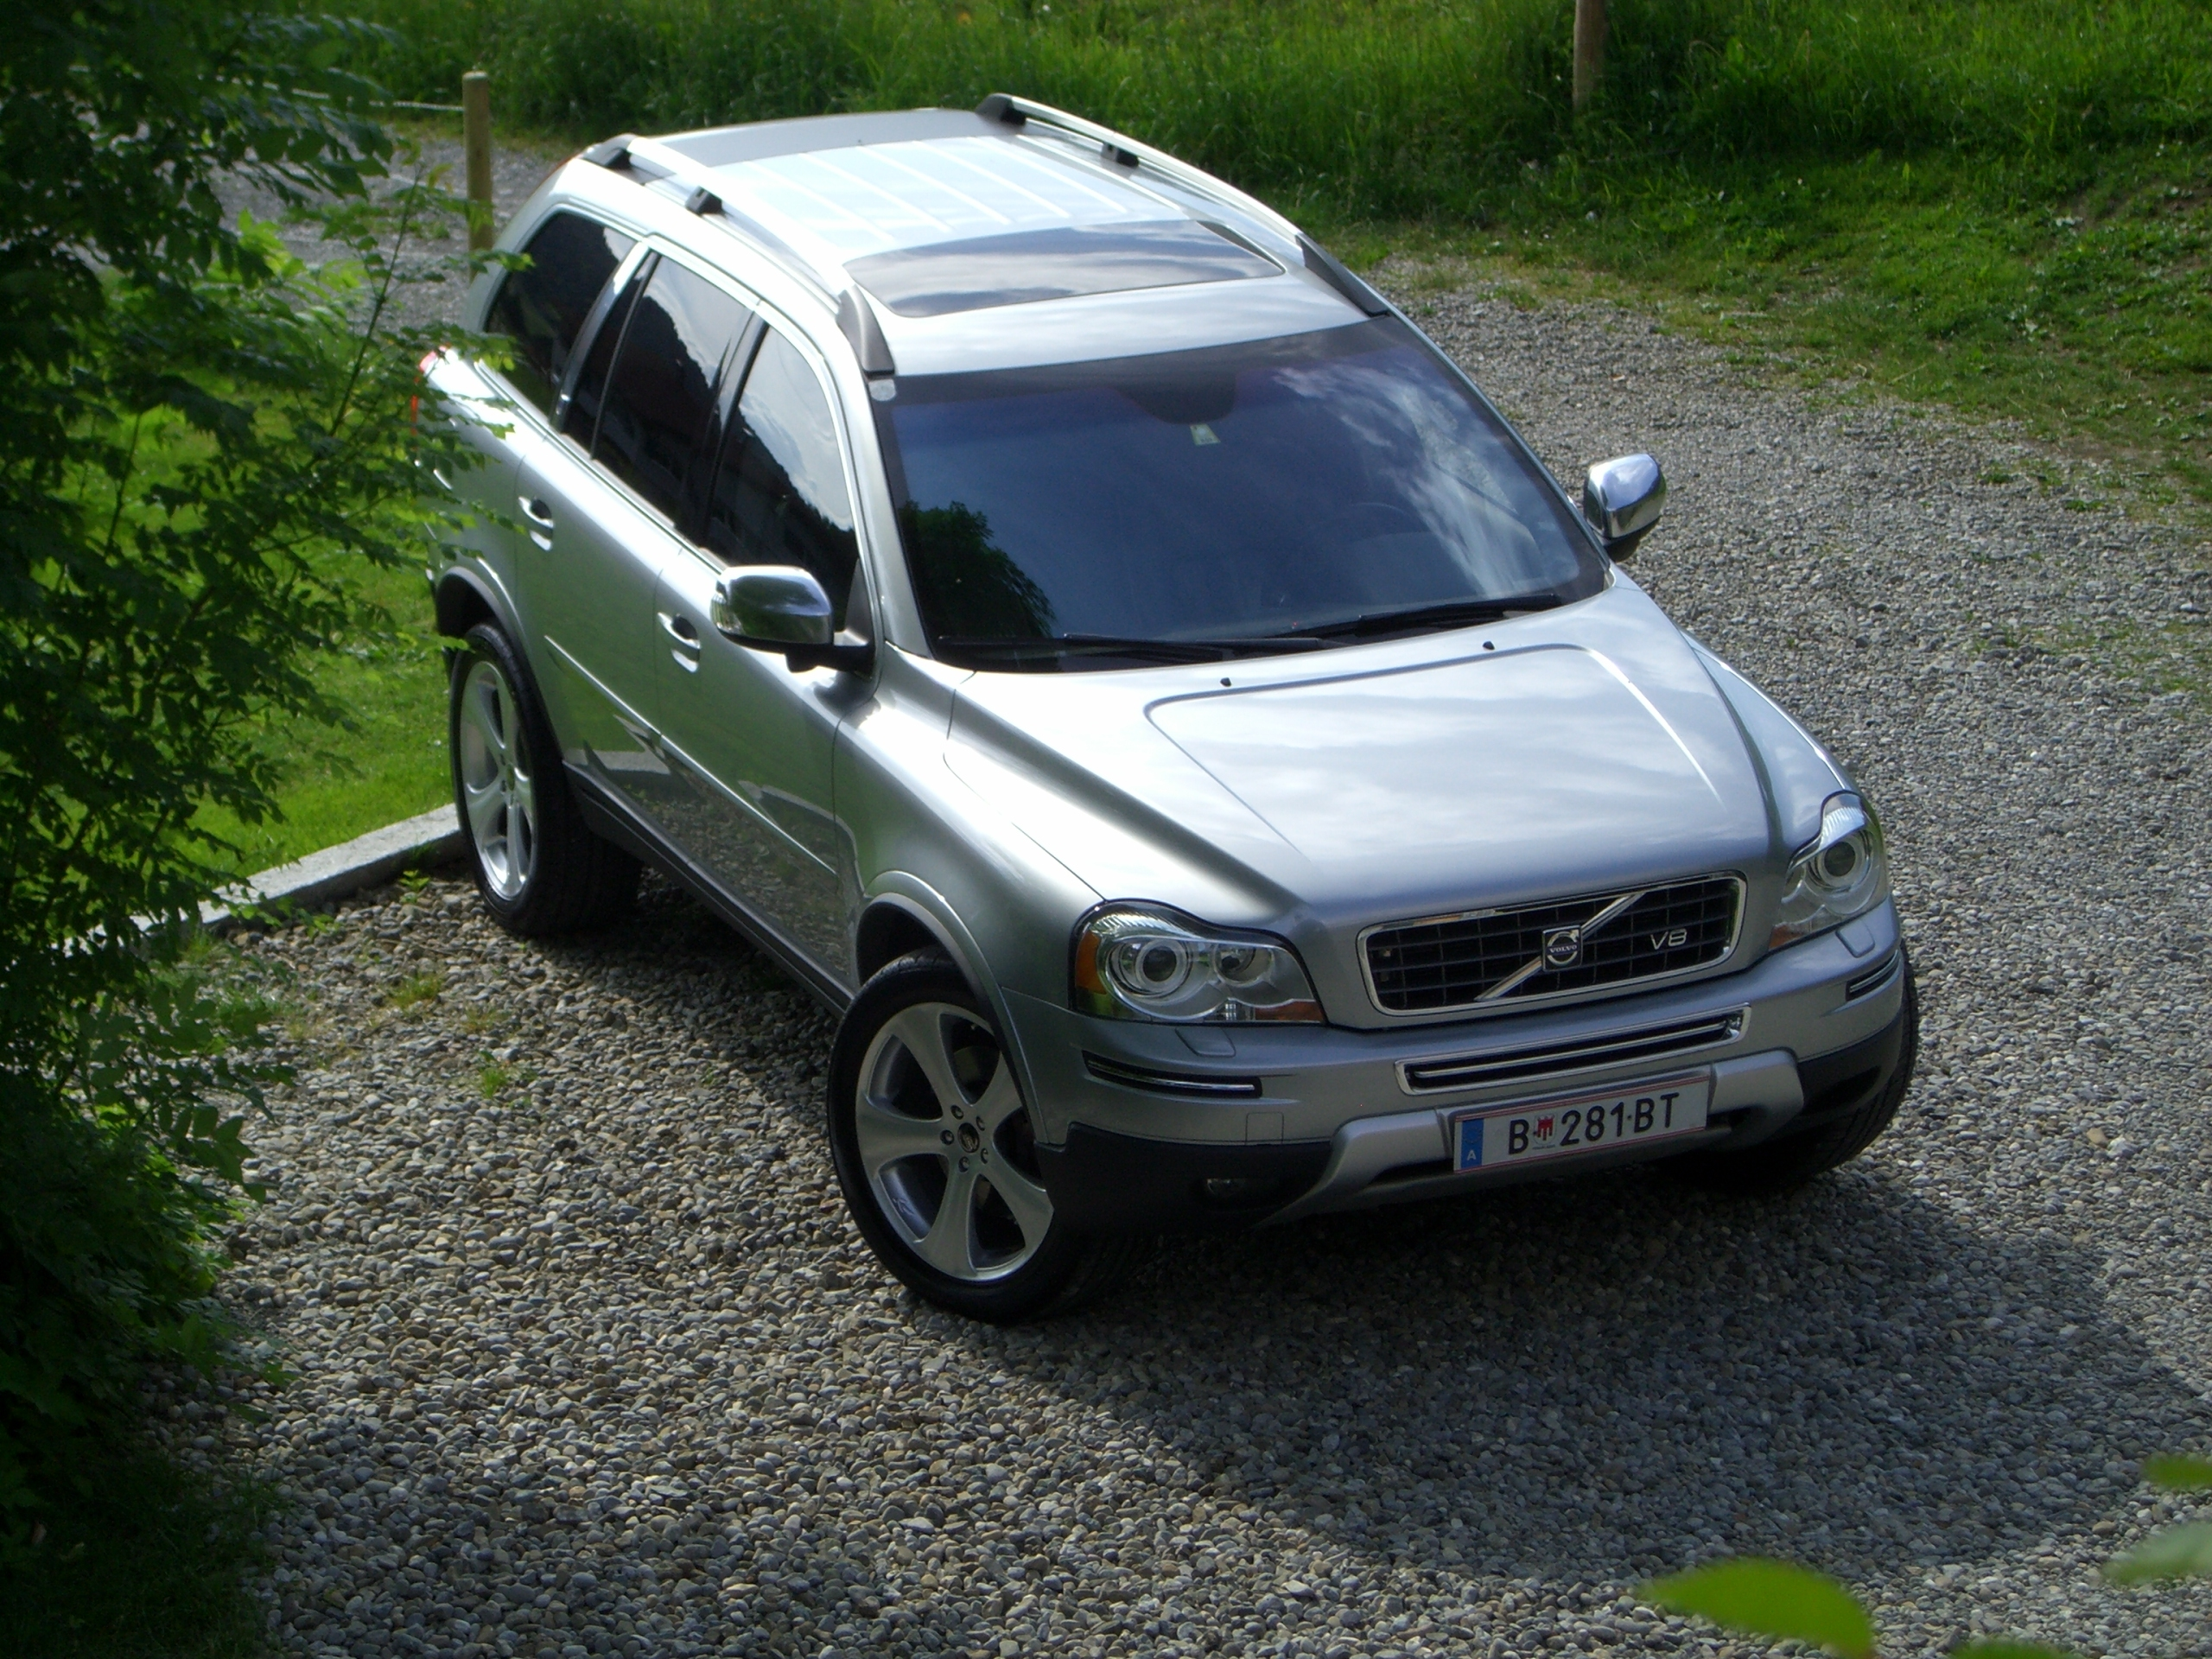 Doc780 2008 Volvo XC90 Specs, Photos, Modification Info at CarDomain